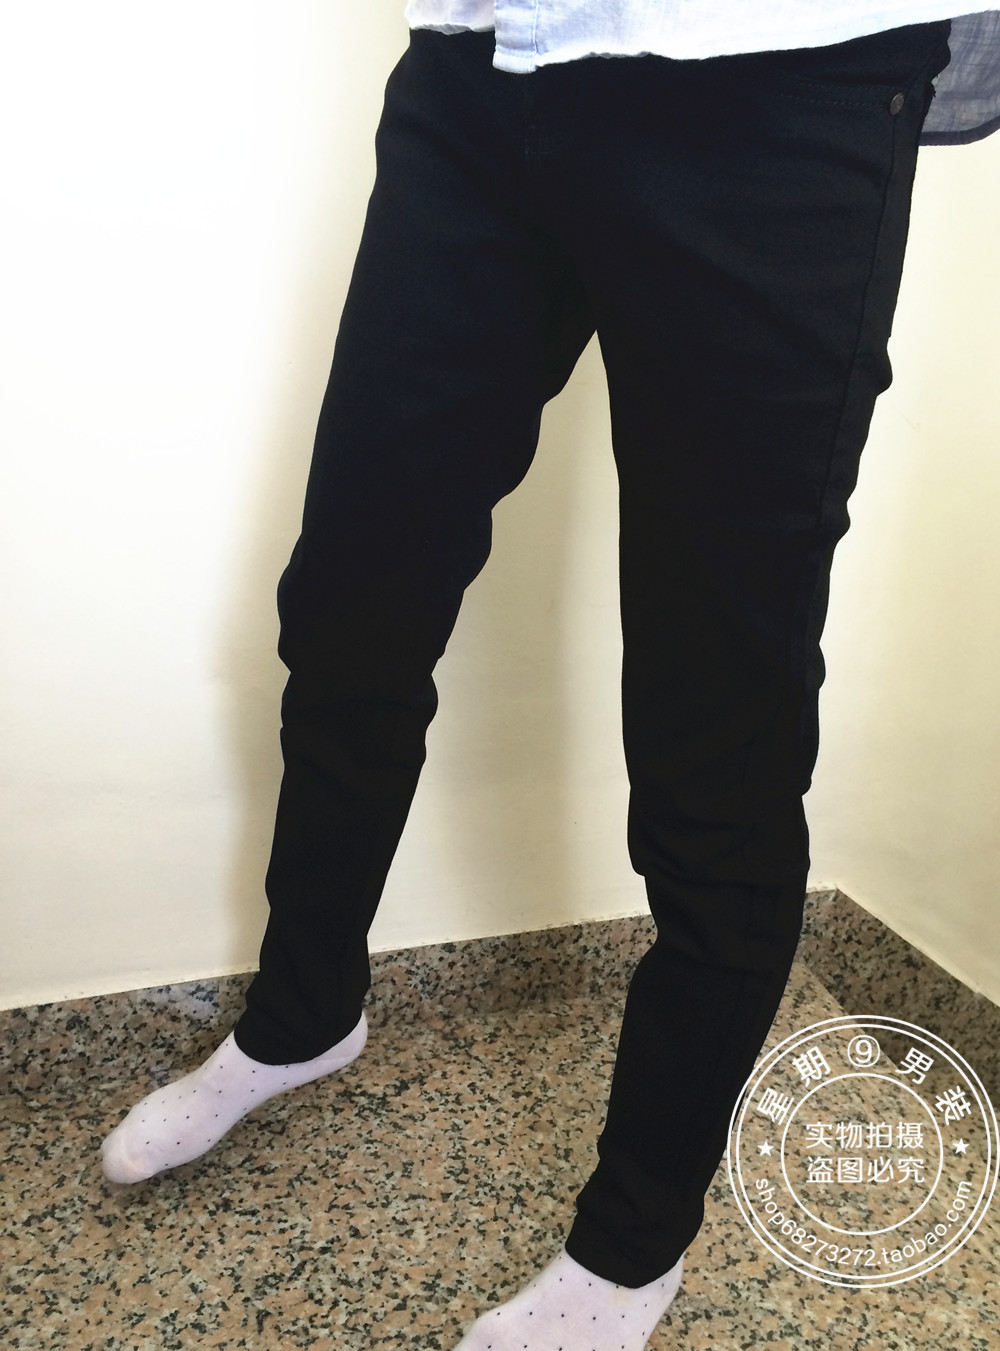 Small Jeans Men's Spring And Summer-Elasticity Black And White With Pattern Long Pants Men'S Wear Casual Slim Fit Pants Closing